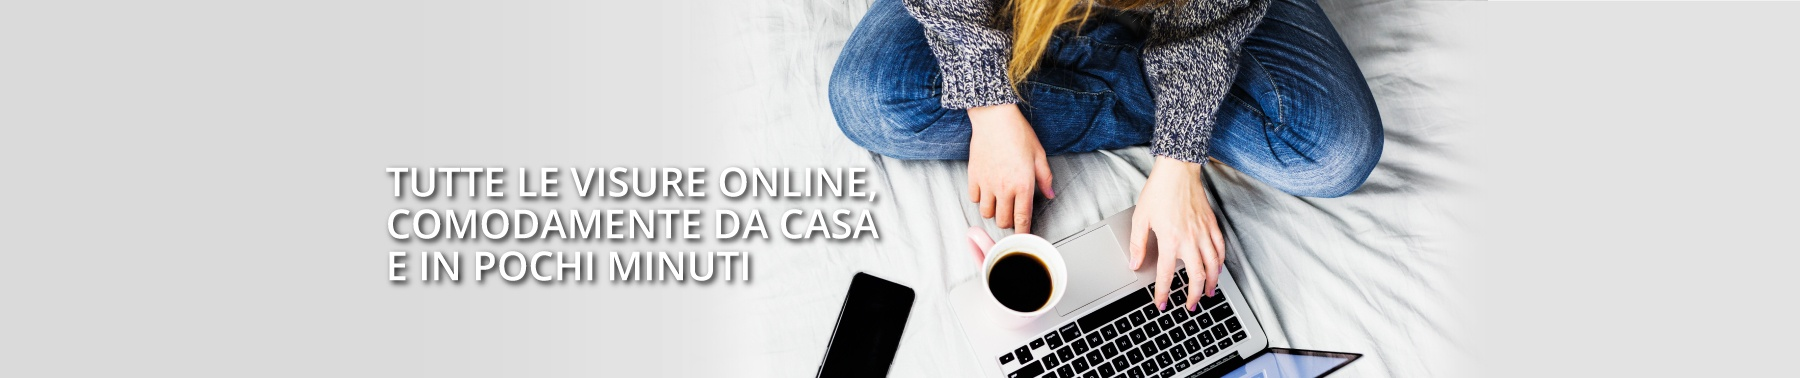 Visure online: visure facili e veloci